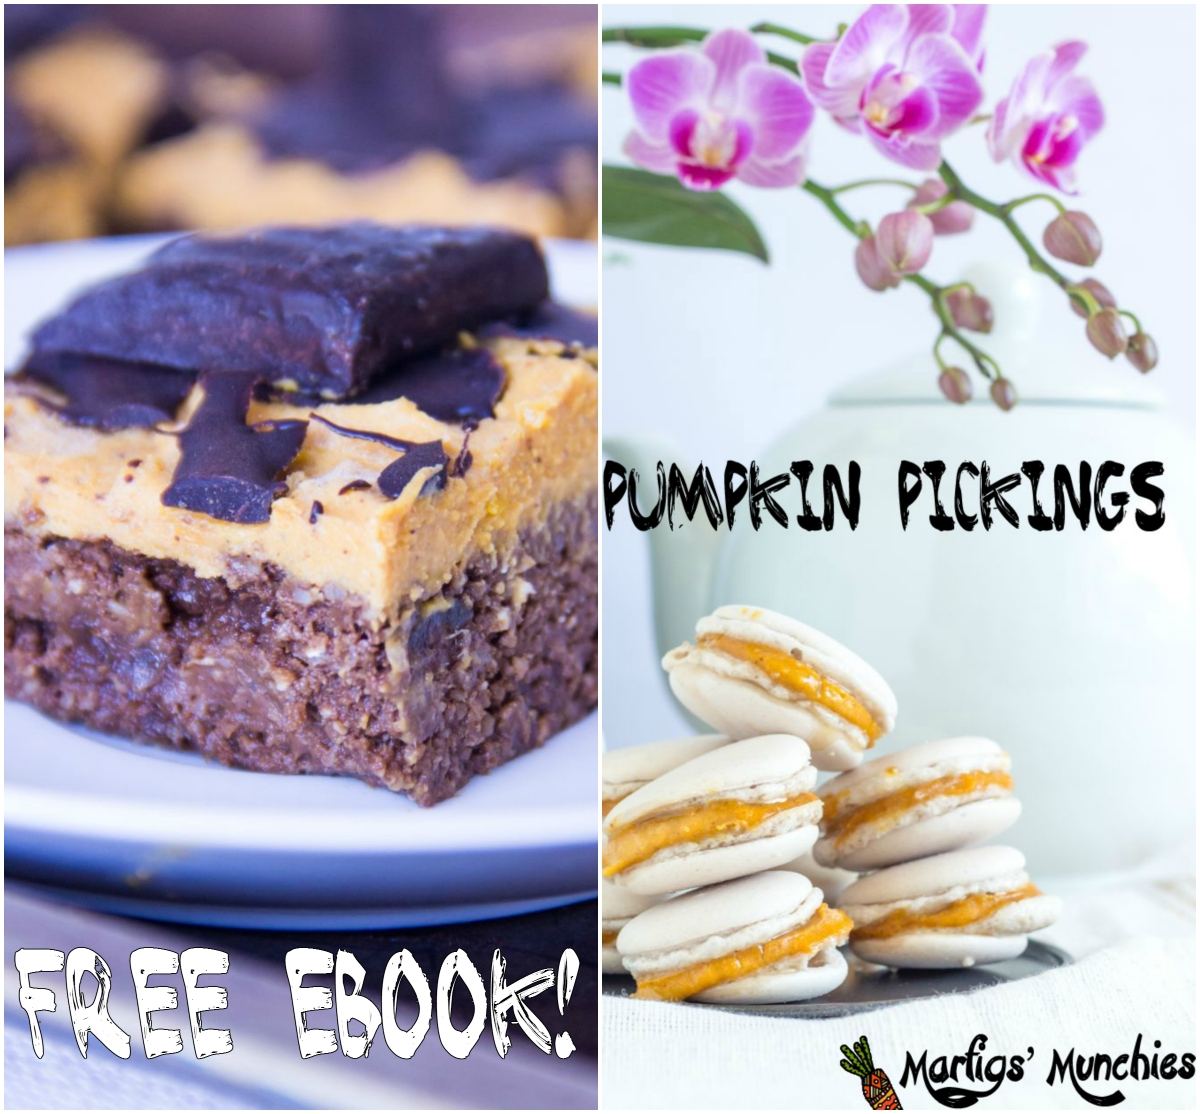 Free Ebook: Pumpkin Pickings + NuNaturals giveaway winners!